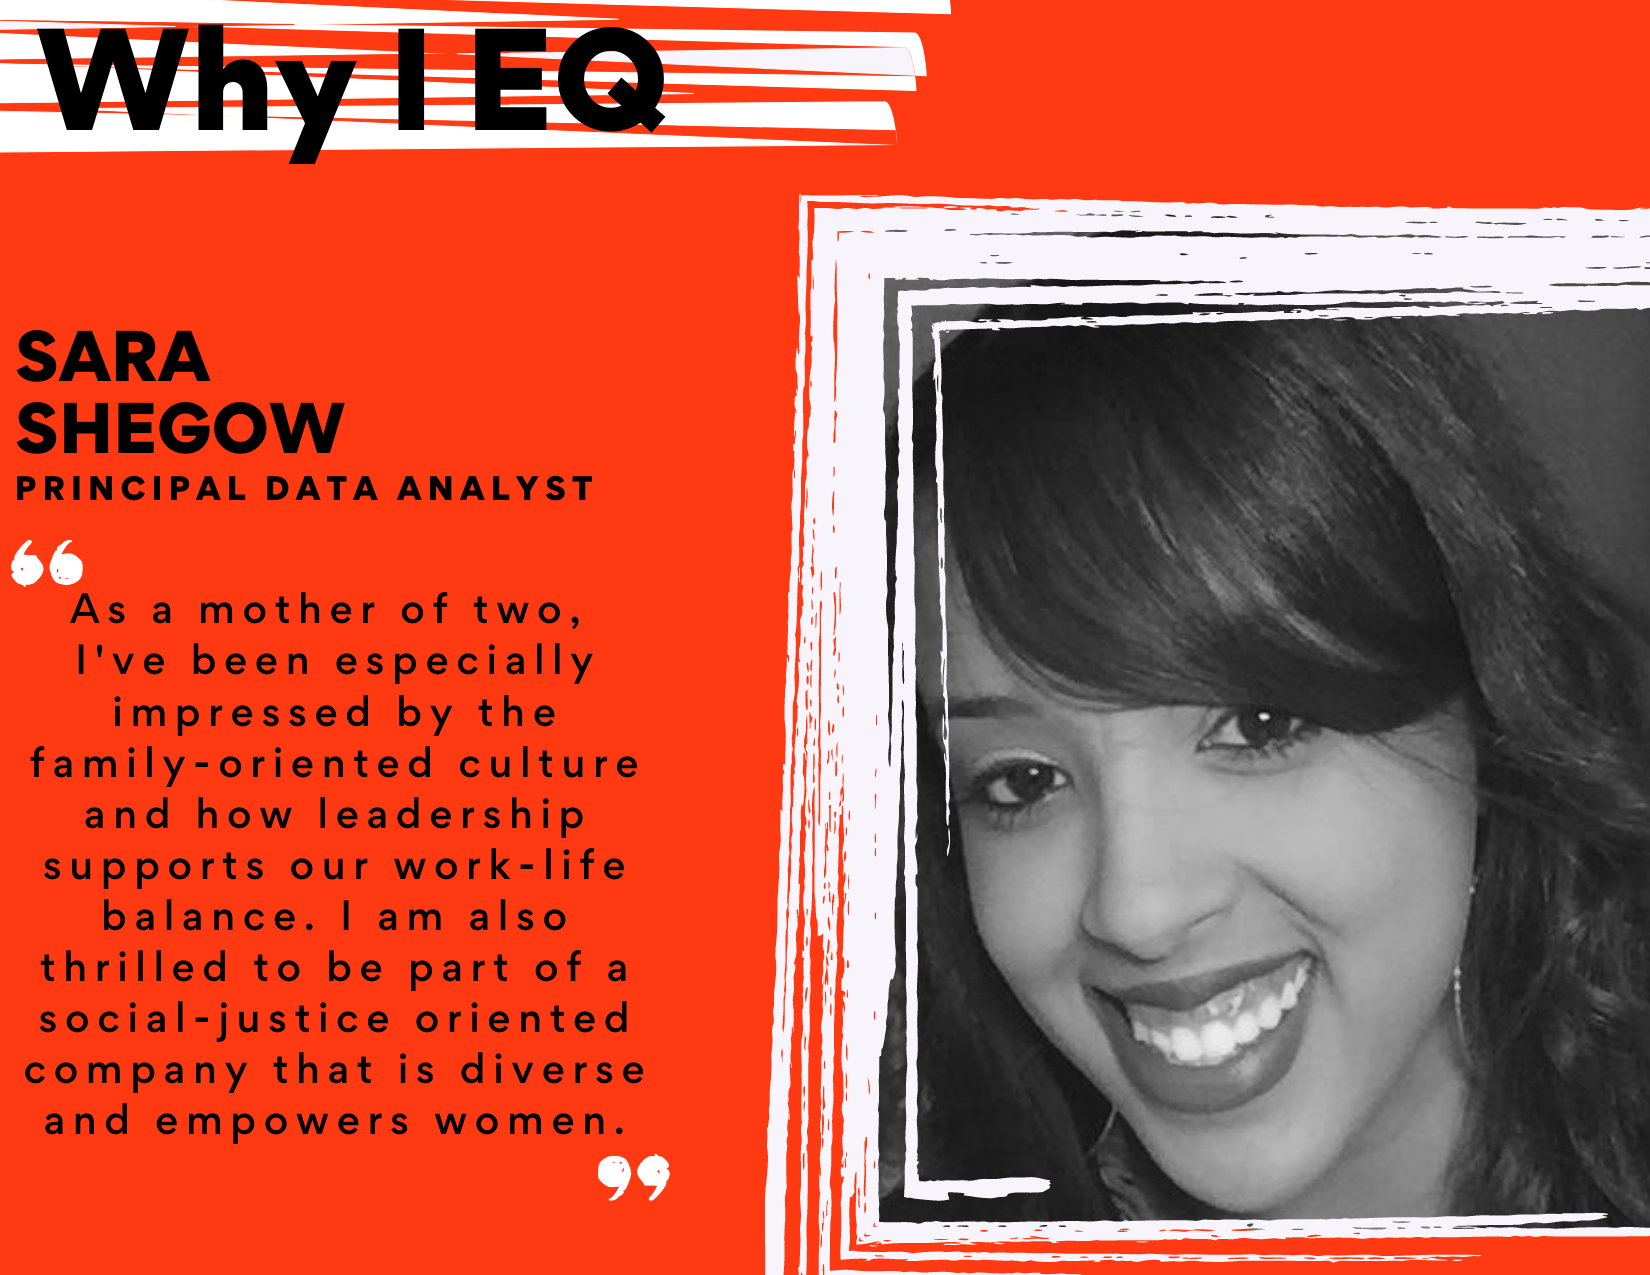 """Image of Sara Shegow, Principal Data Analyst at EQRx. Quote: """"As a mother of two, I've been especially impressed by the family-oriented culture and how leadership supports our work-life balance. I am also thrilled to be part of a social-justice oriented company that is diverse and empowers women."""""""